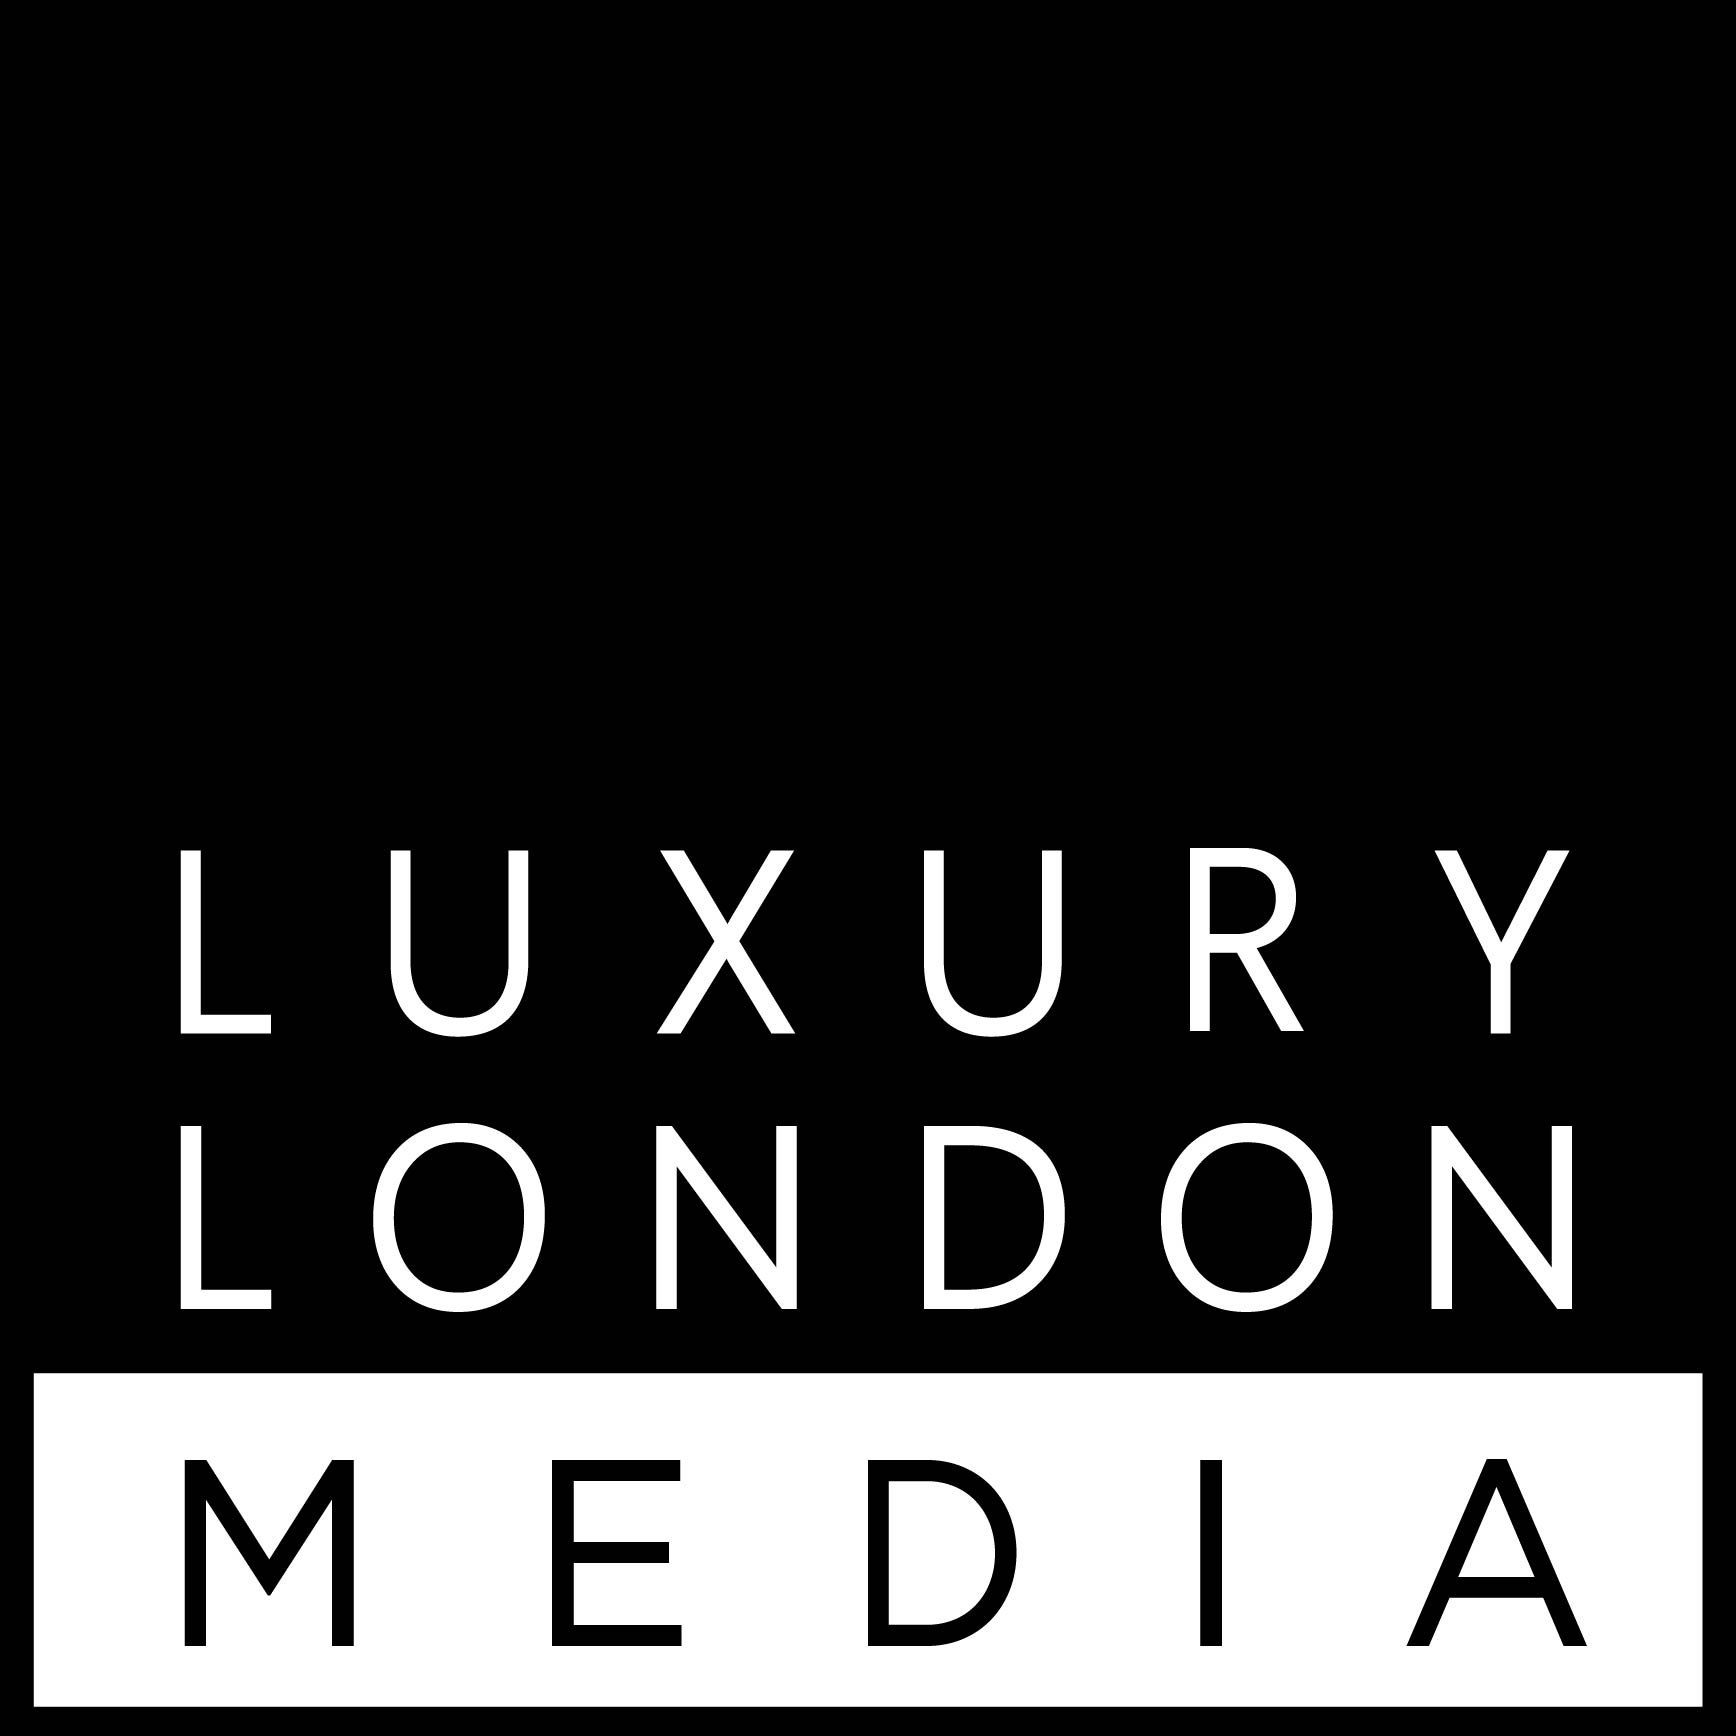 Luxury London Media